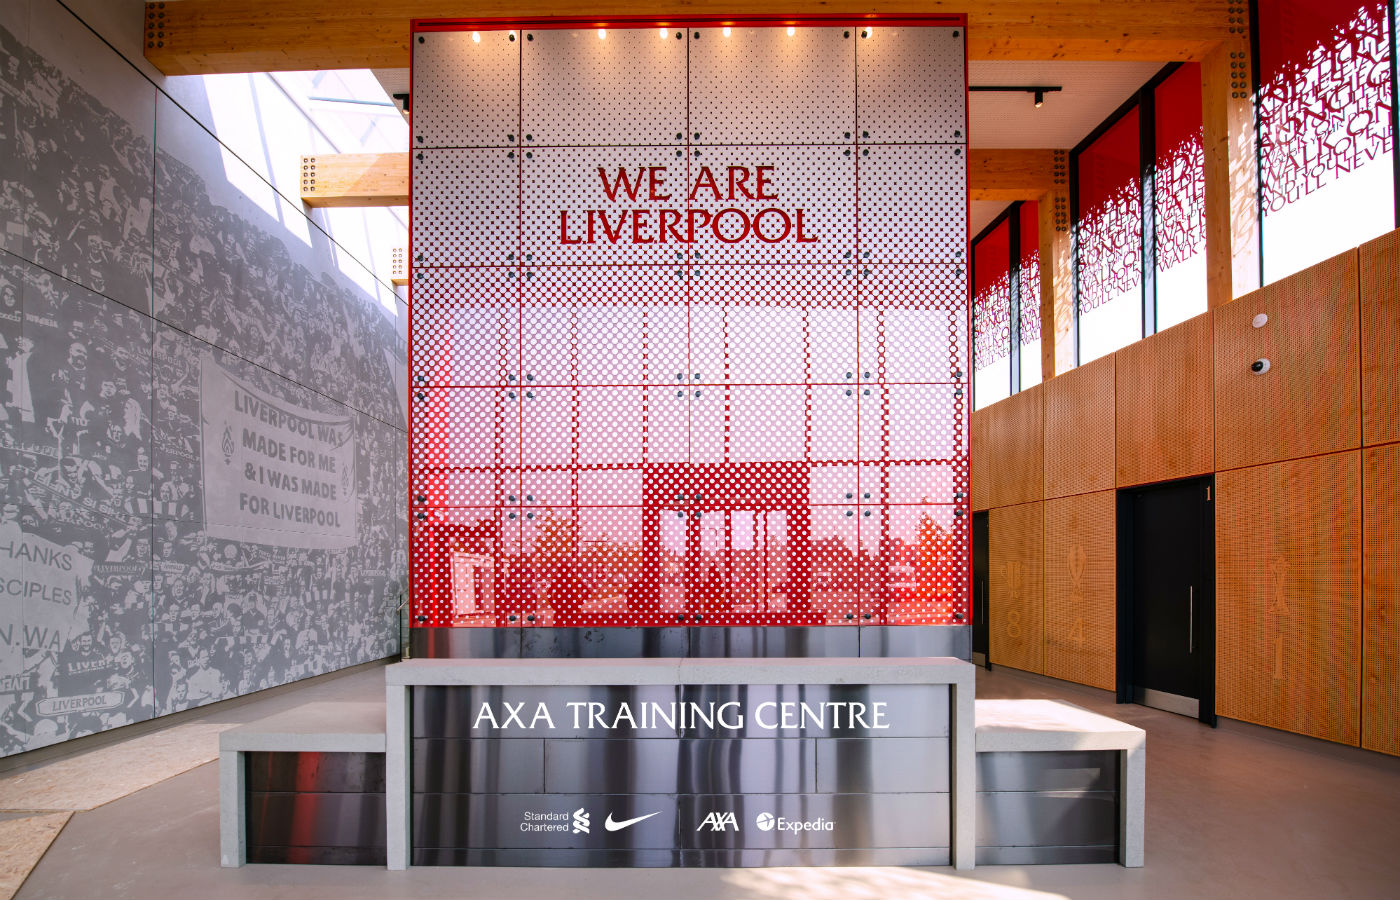 Liverpool agrees training centre deal with AXA